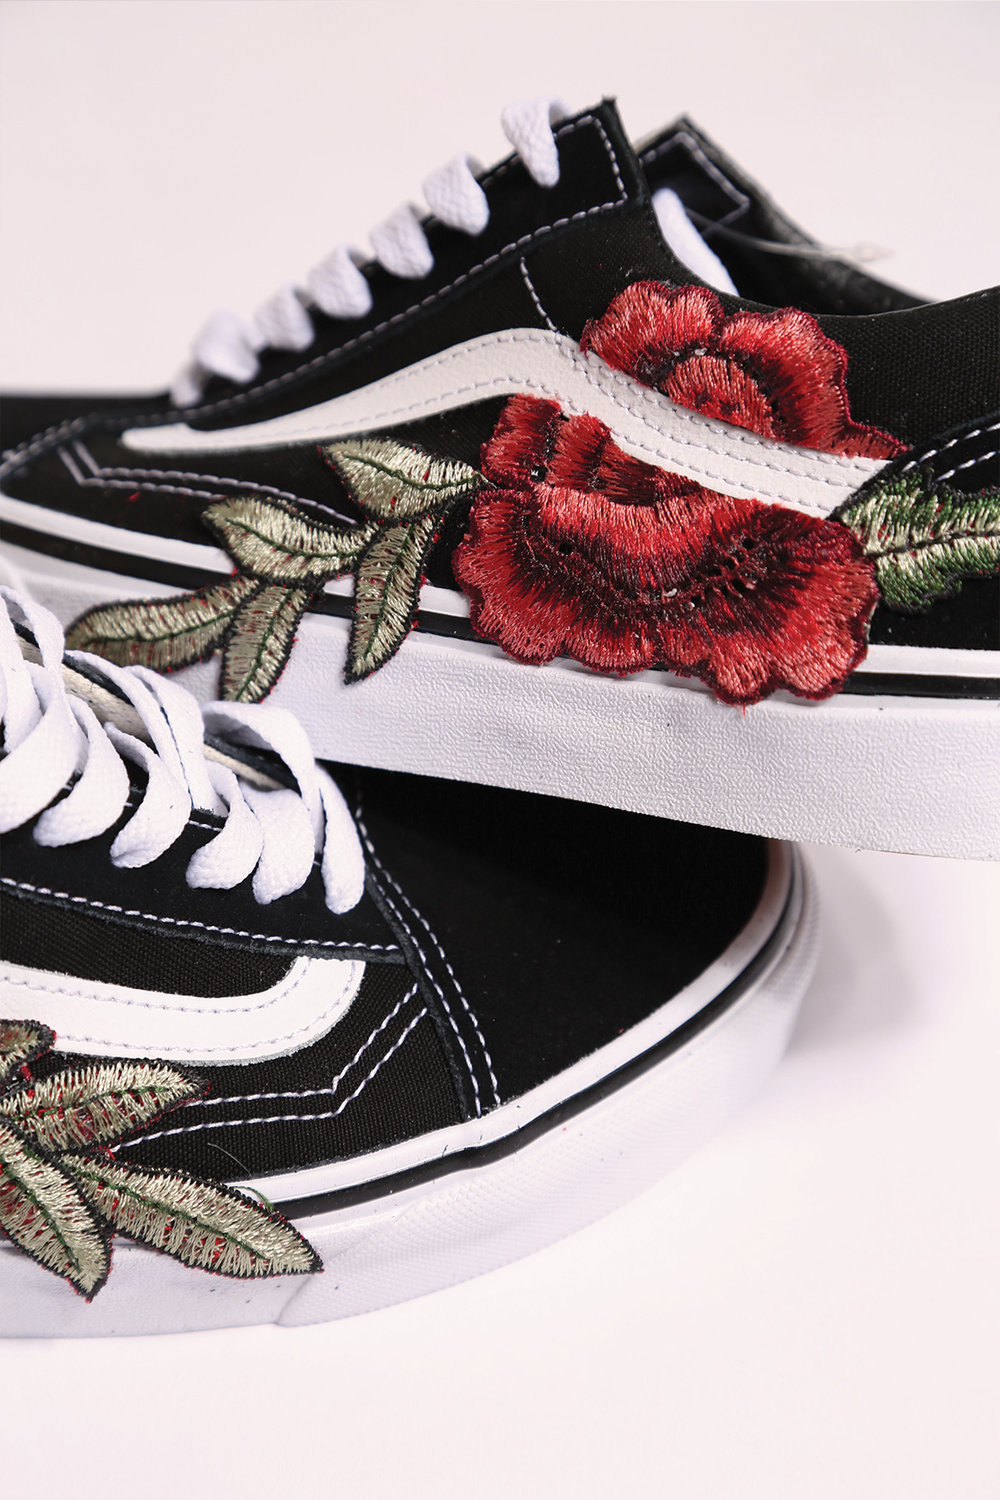 vans old skool red rose